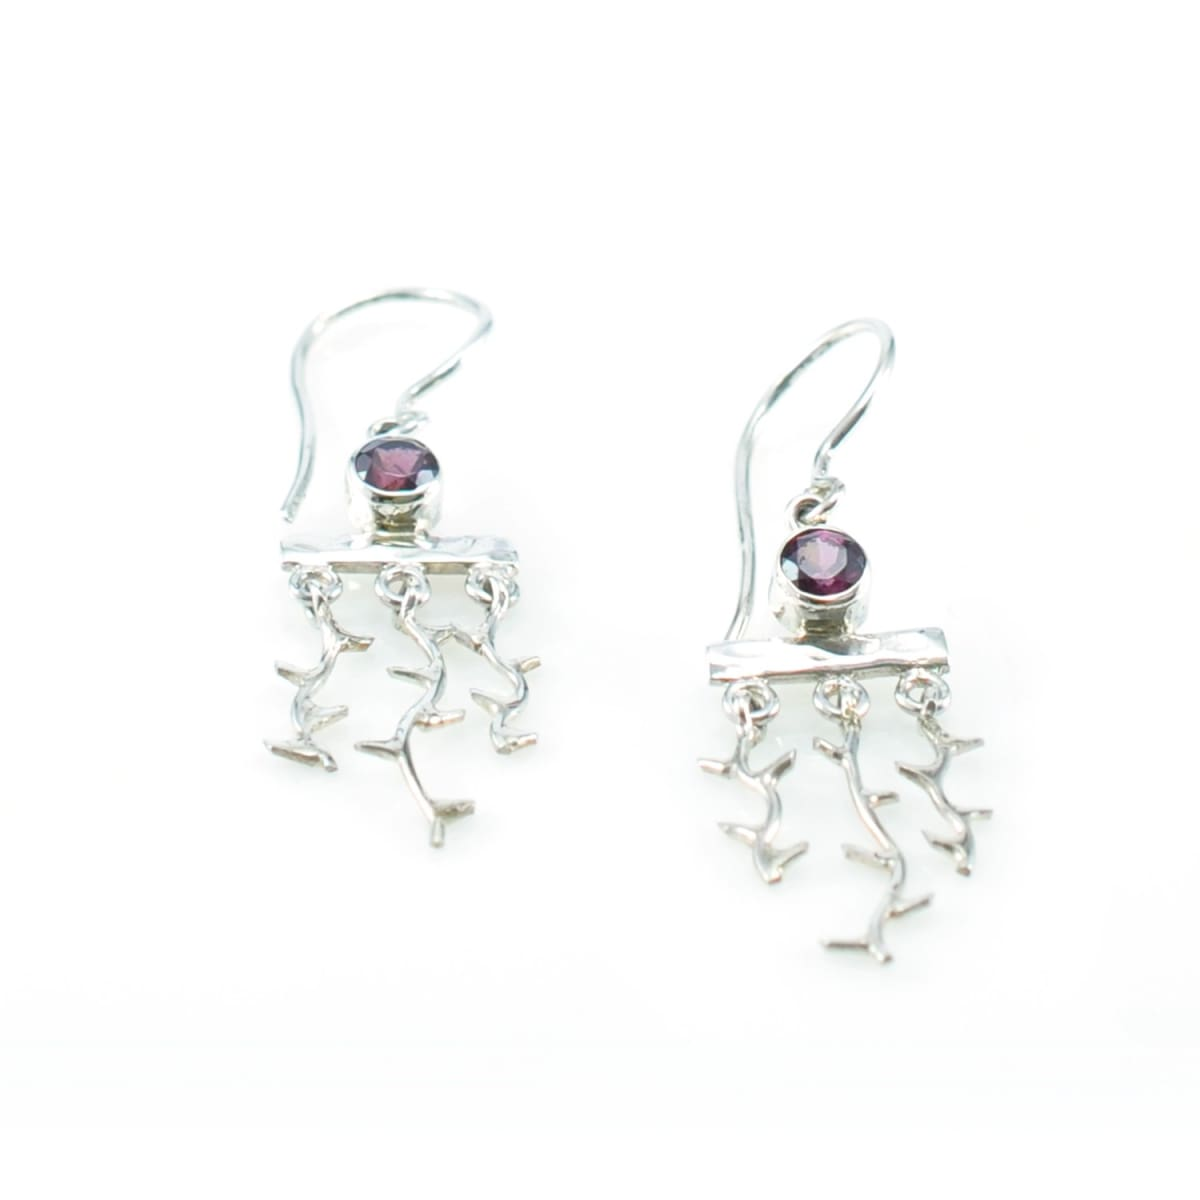 Nature's Window Earrings with Rubelite